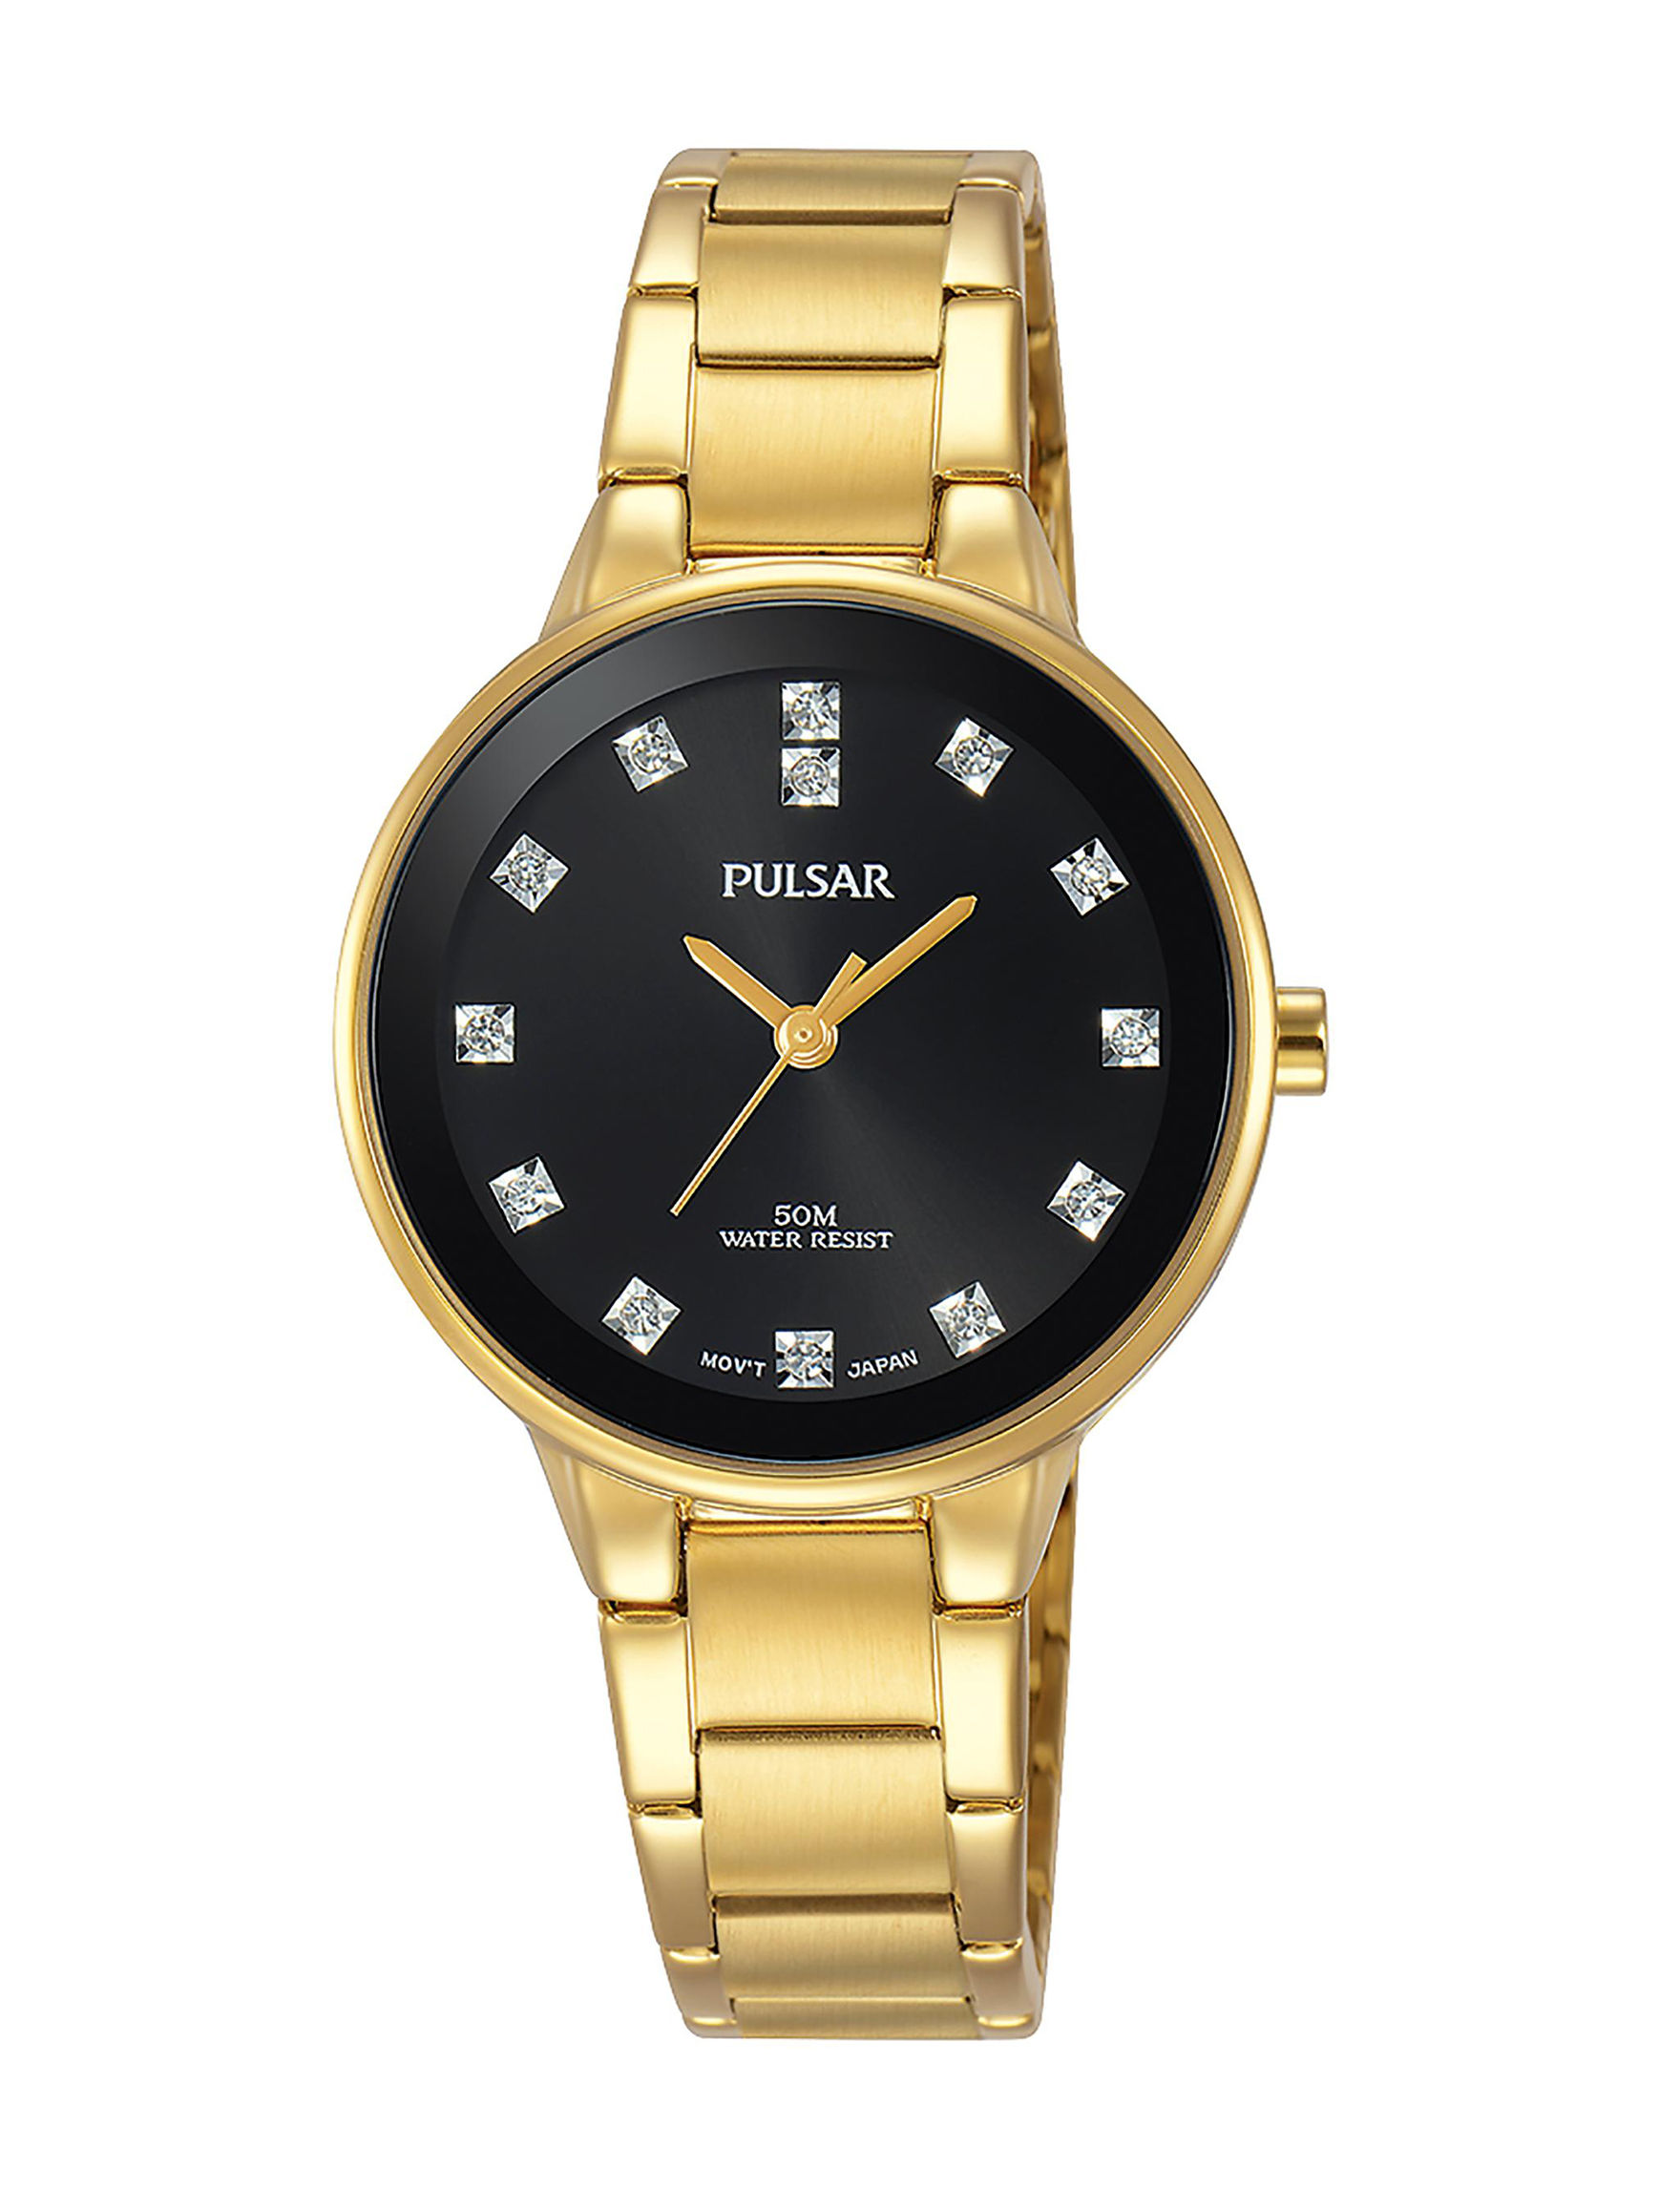 Pulsar Gold Fashion Watches